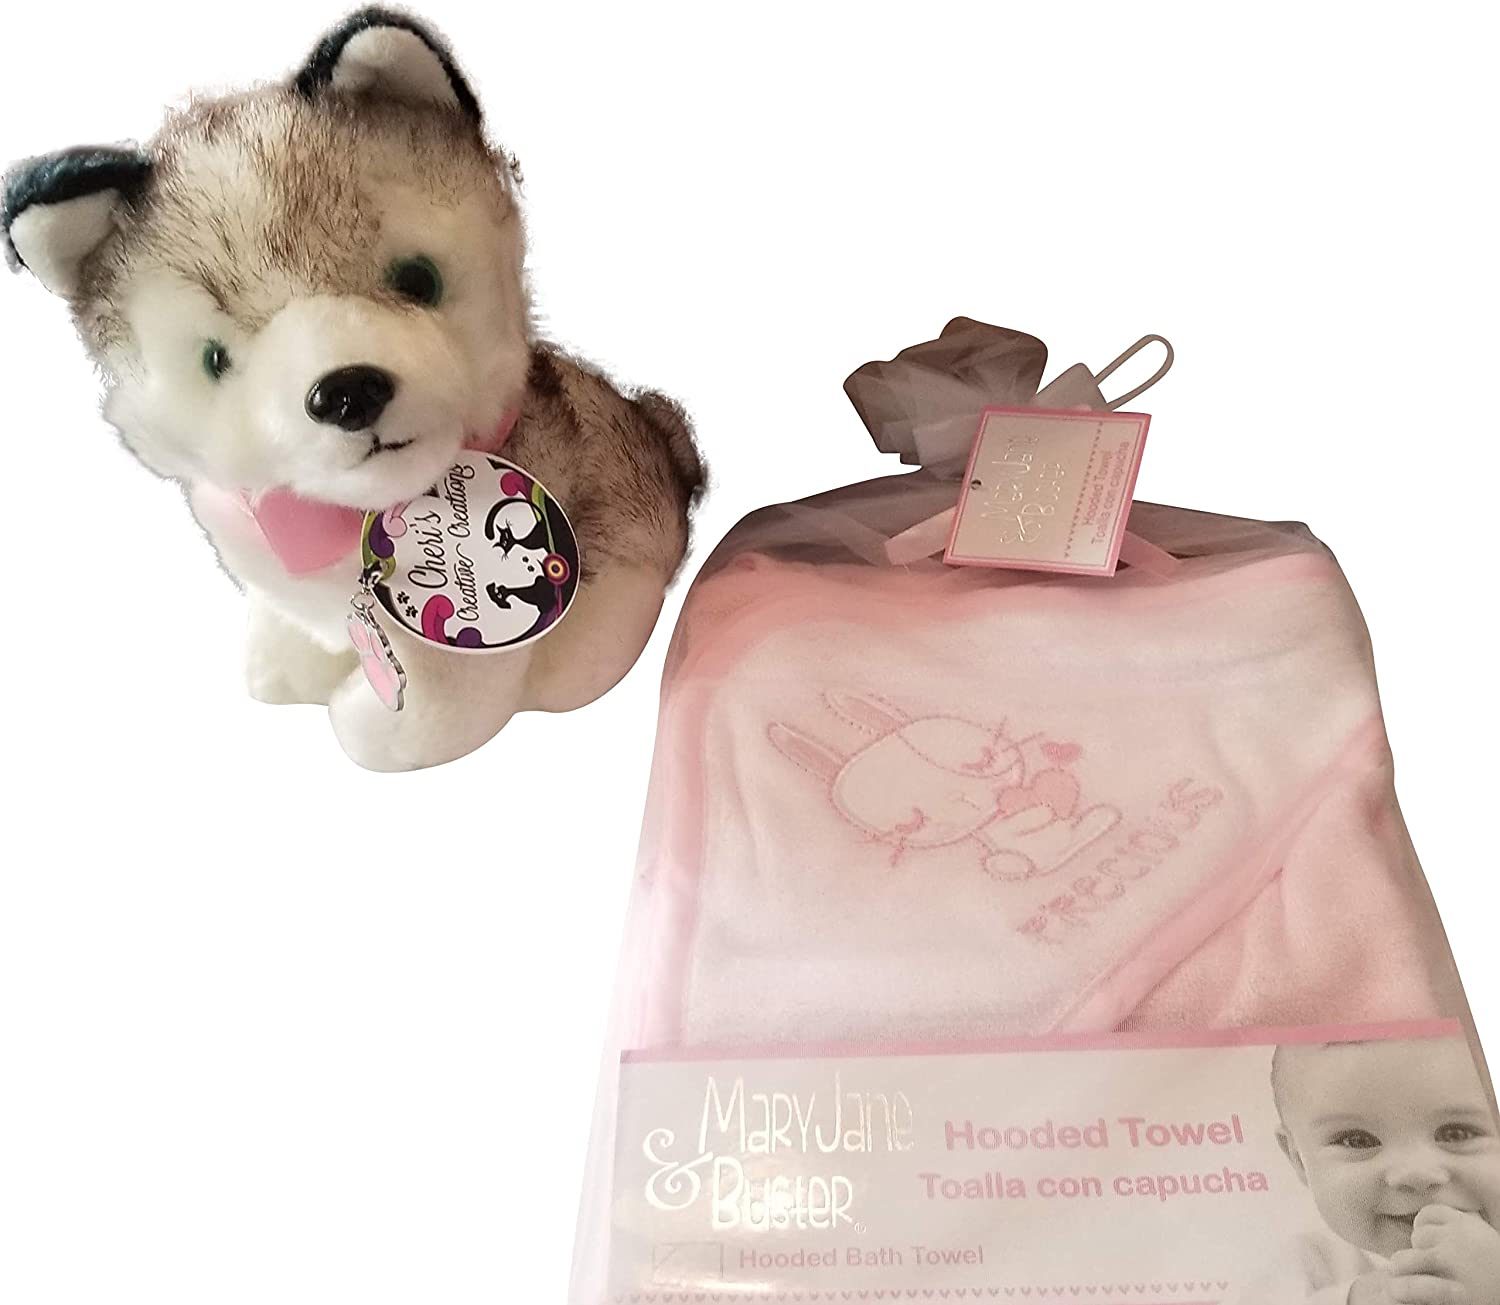 Amazon.com : Hooded Baby Bath TowellPink and White and Stuffed Husky Dog with Real Dog Colar : Baby